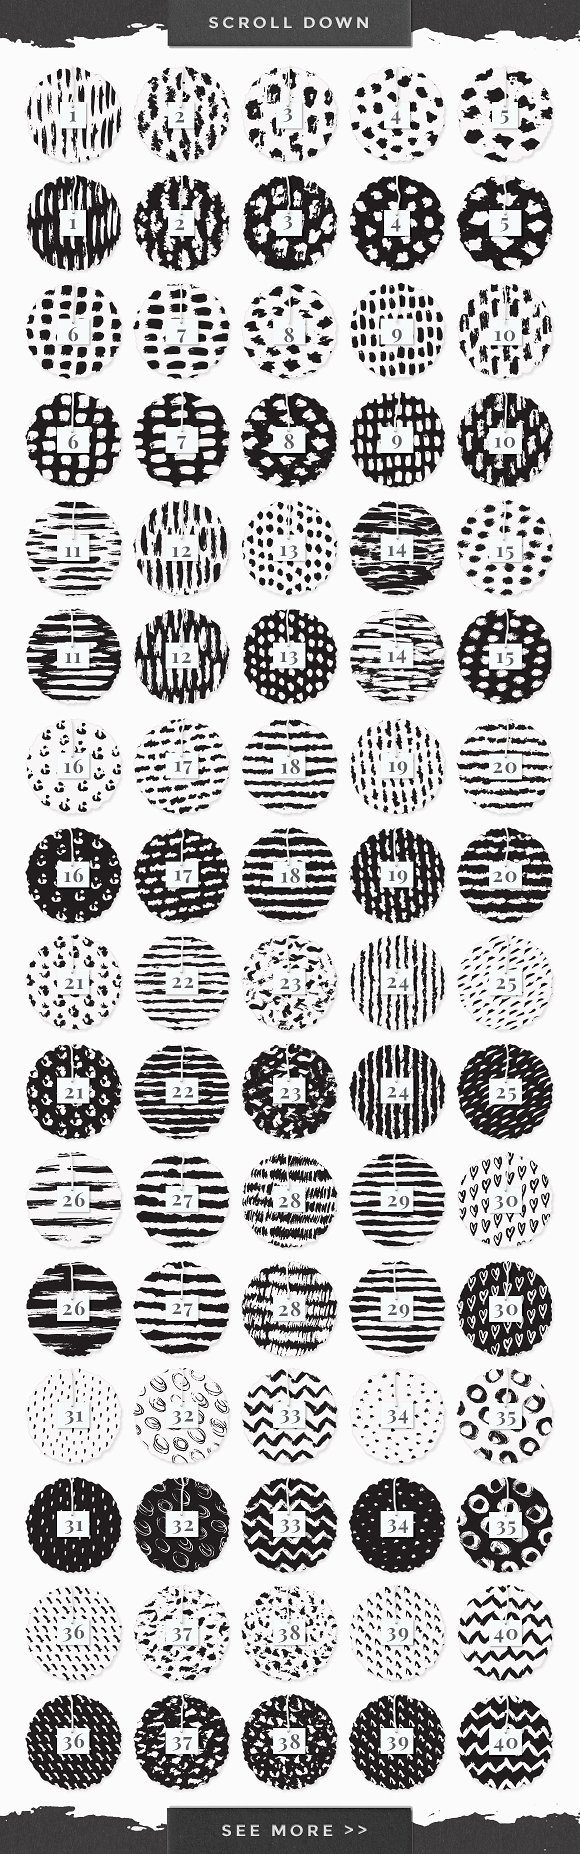 InkBox - 240 Inky Patterns + Extras! in Patterns - product preview 4